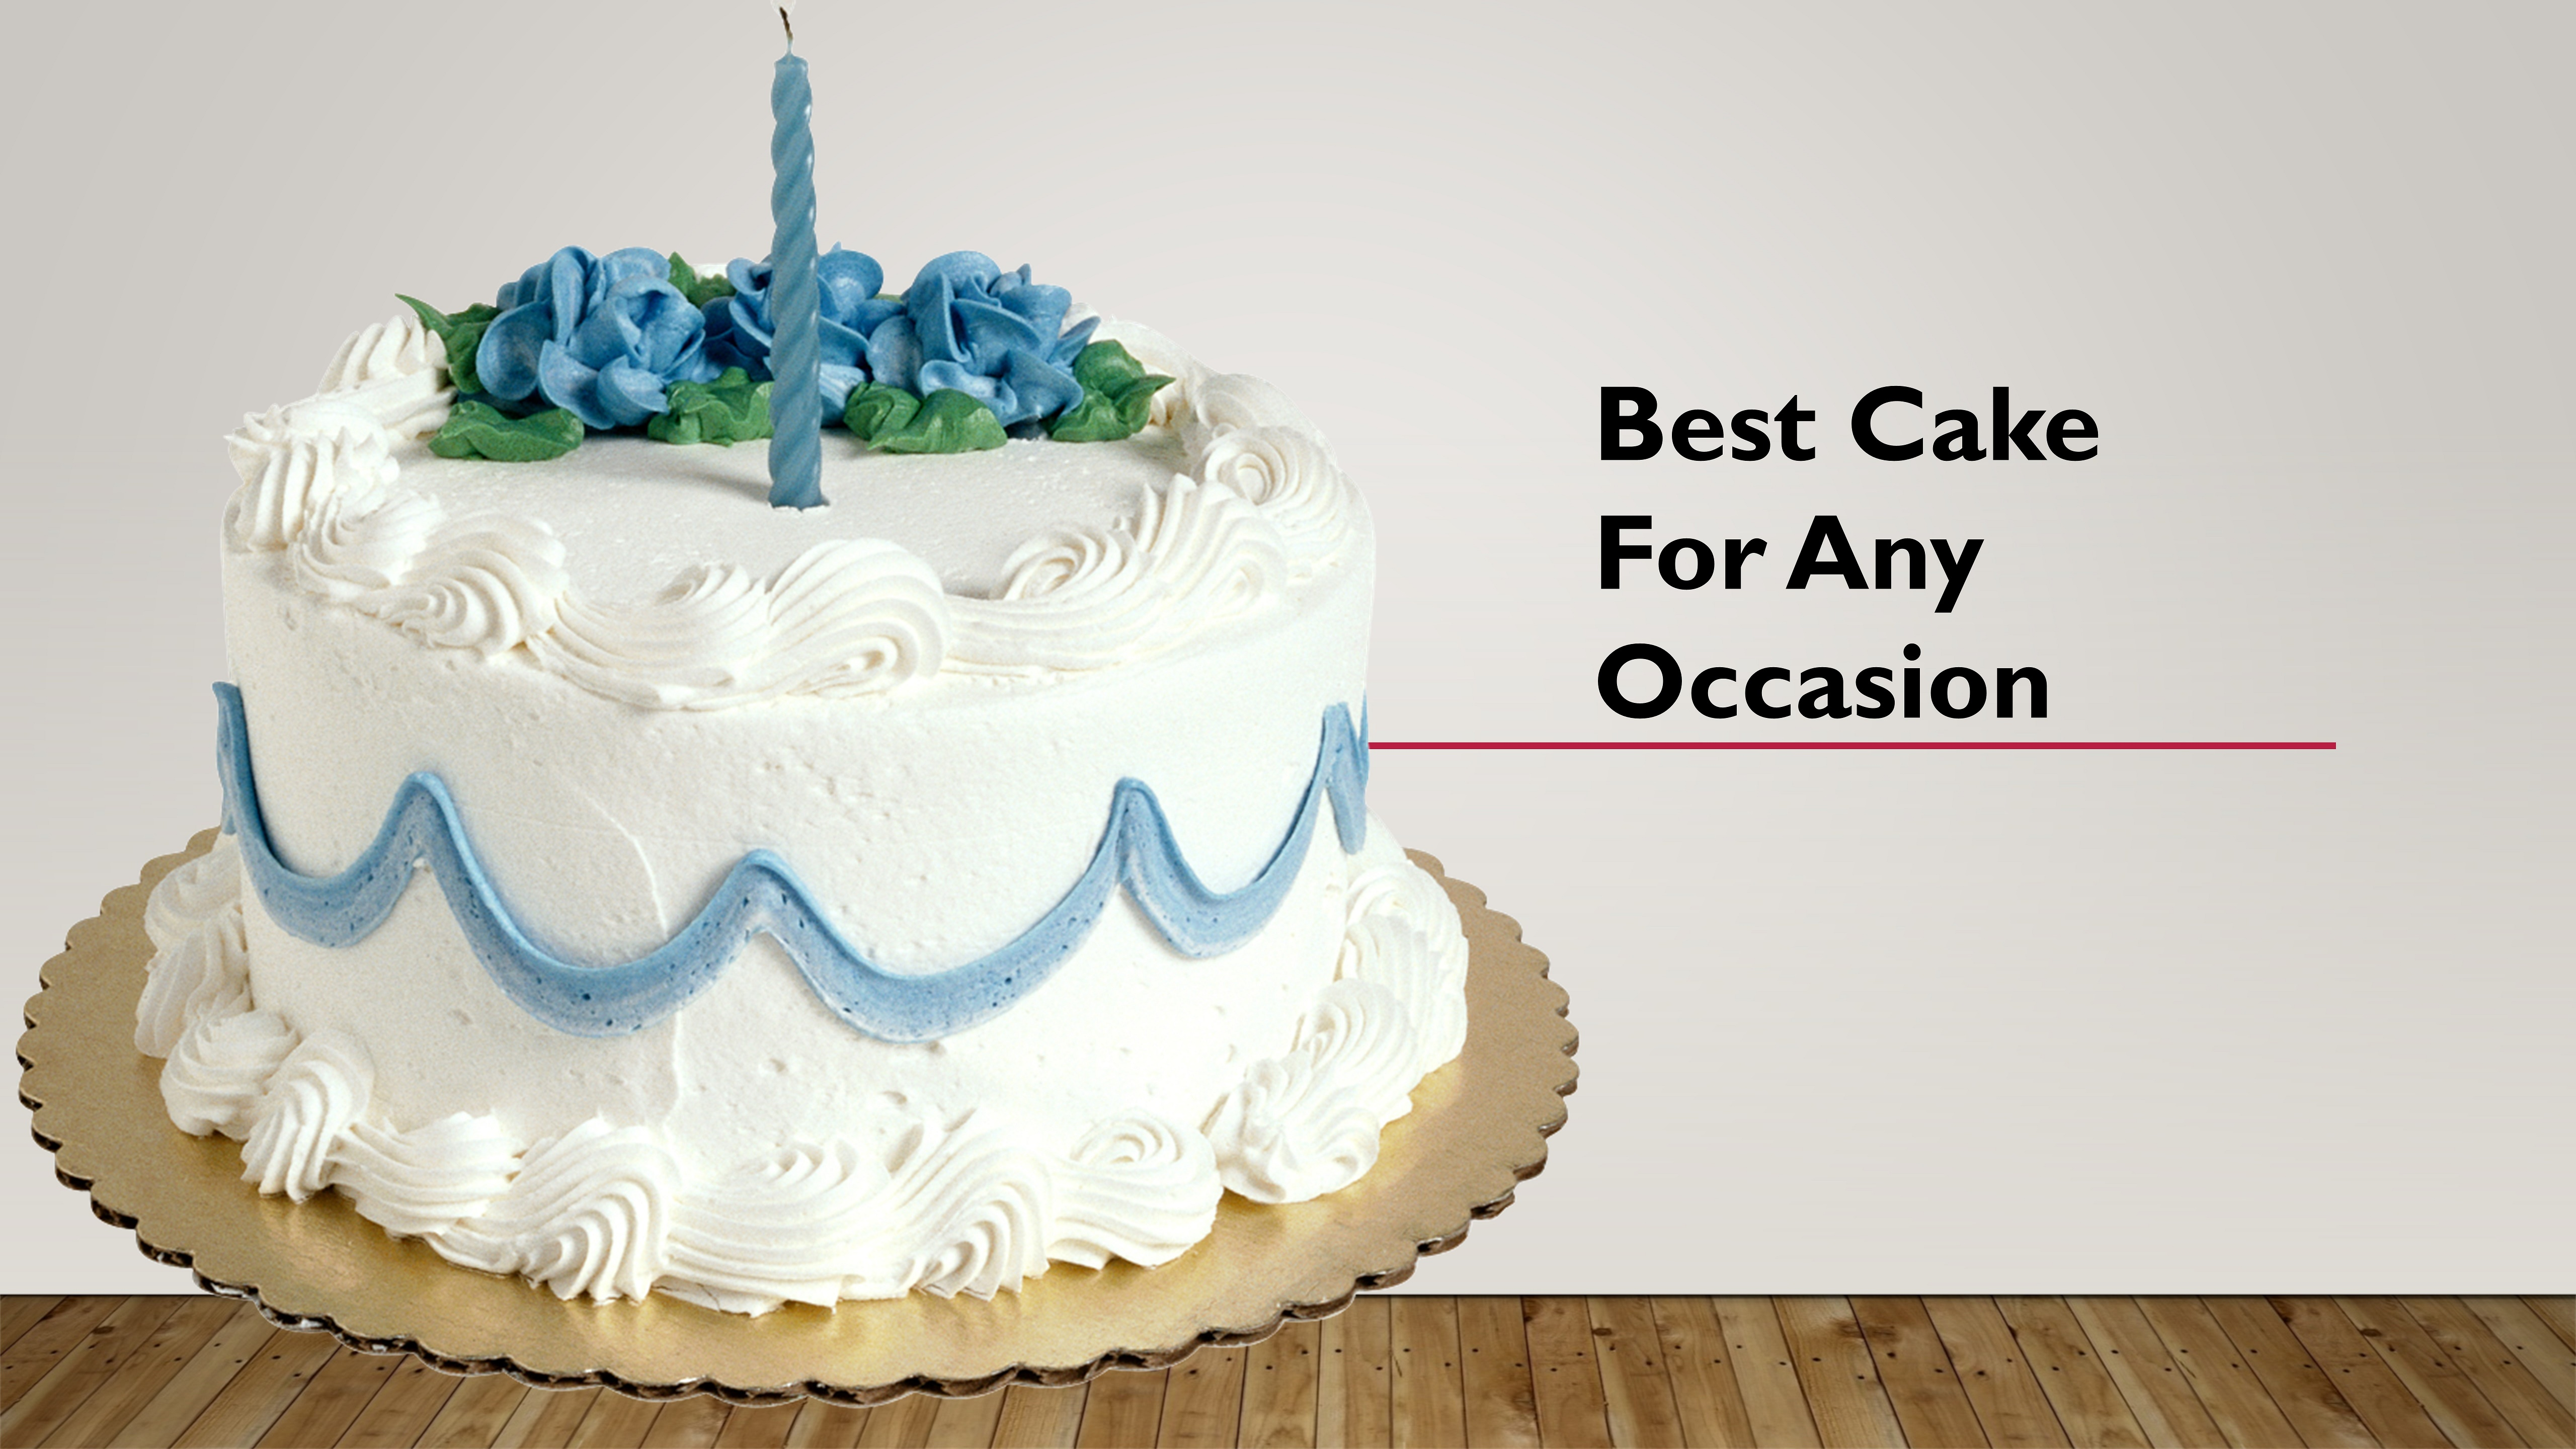 Choose the Best Cake for Any Occasion and Send It Online